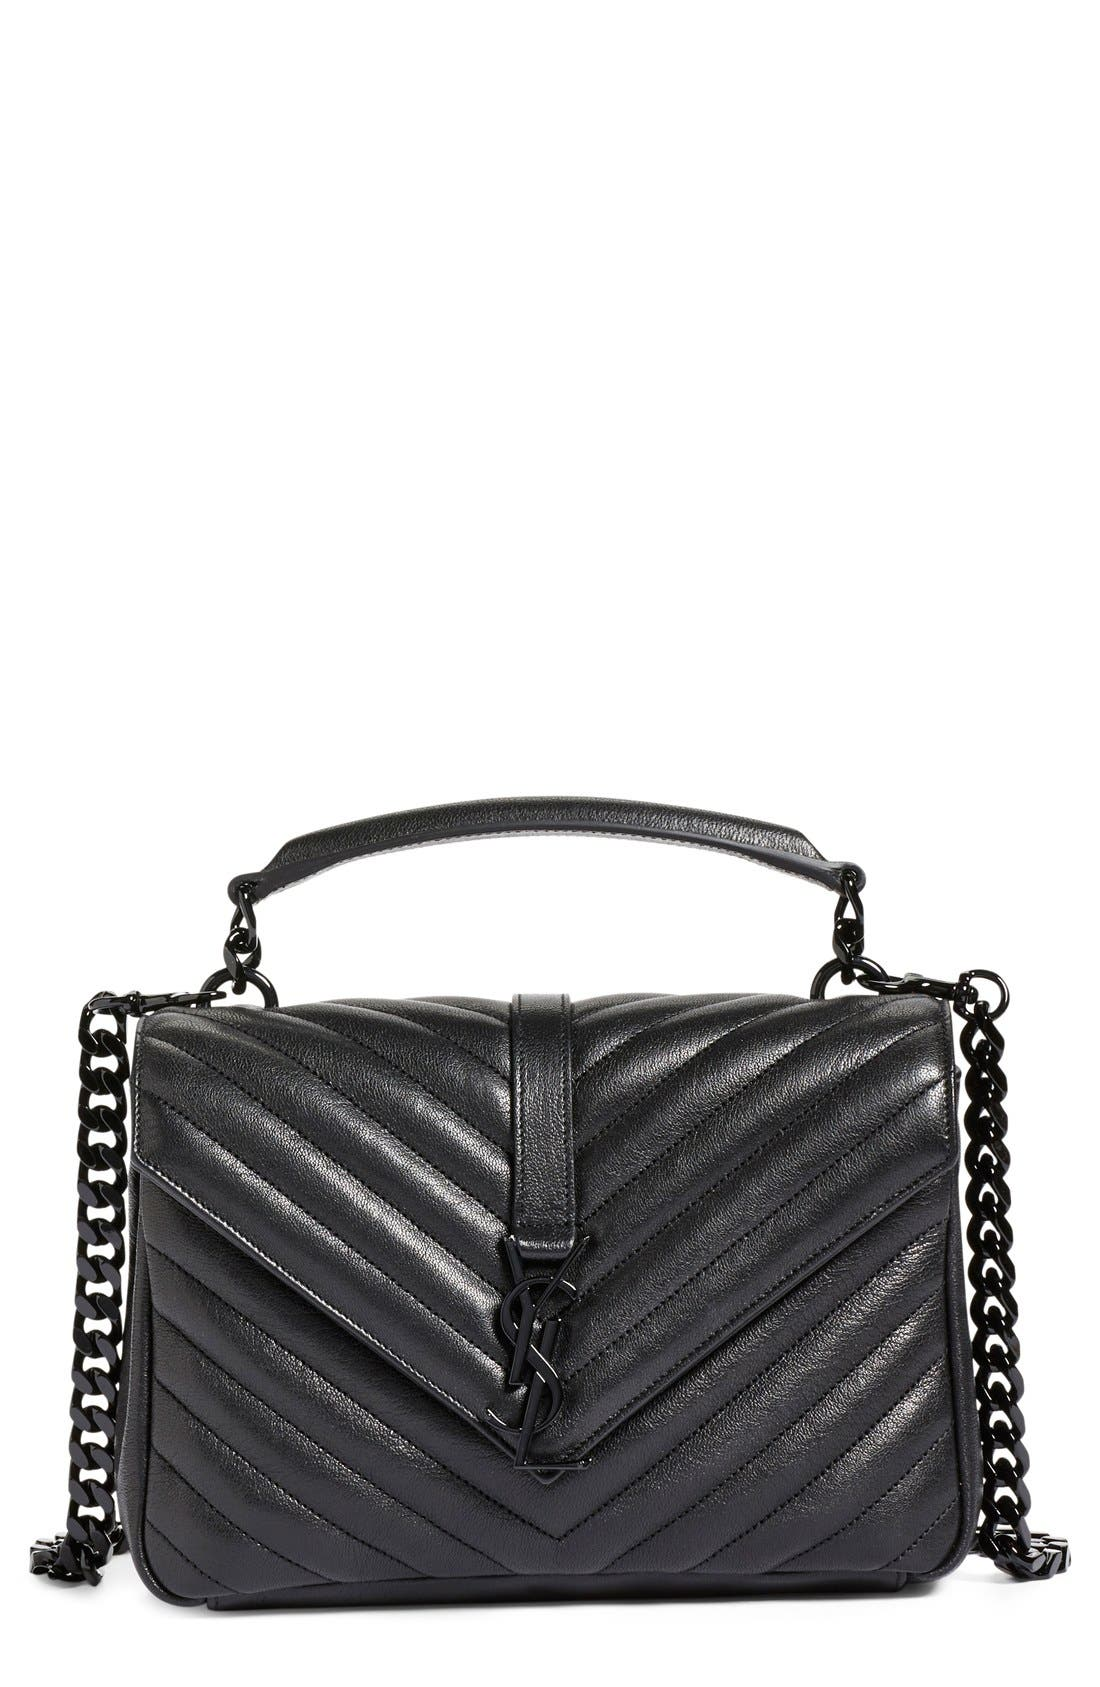 'Medium College' Quilted Leather Shoulder Bag,                             Main thumbnail 1, color,                             001